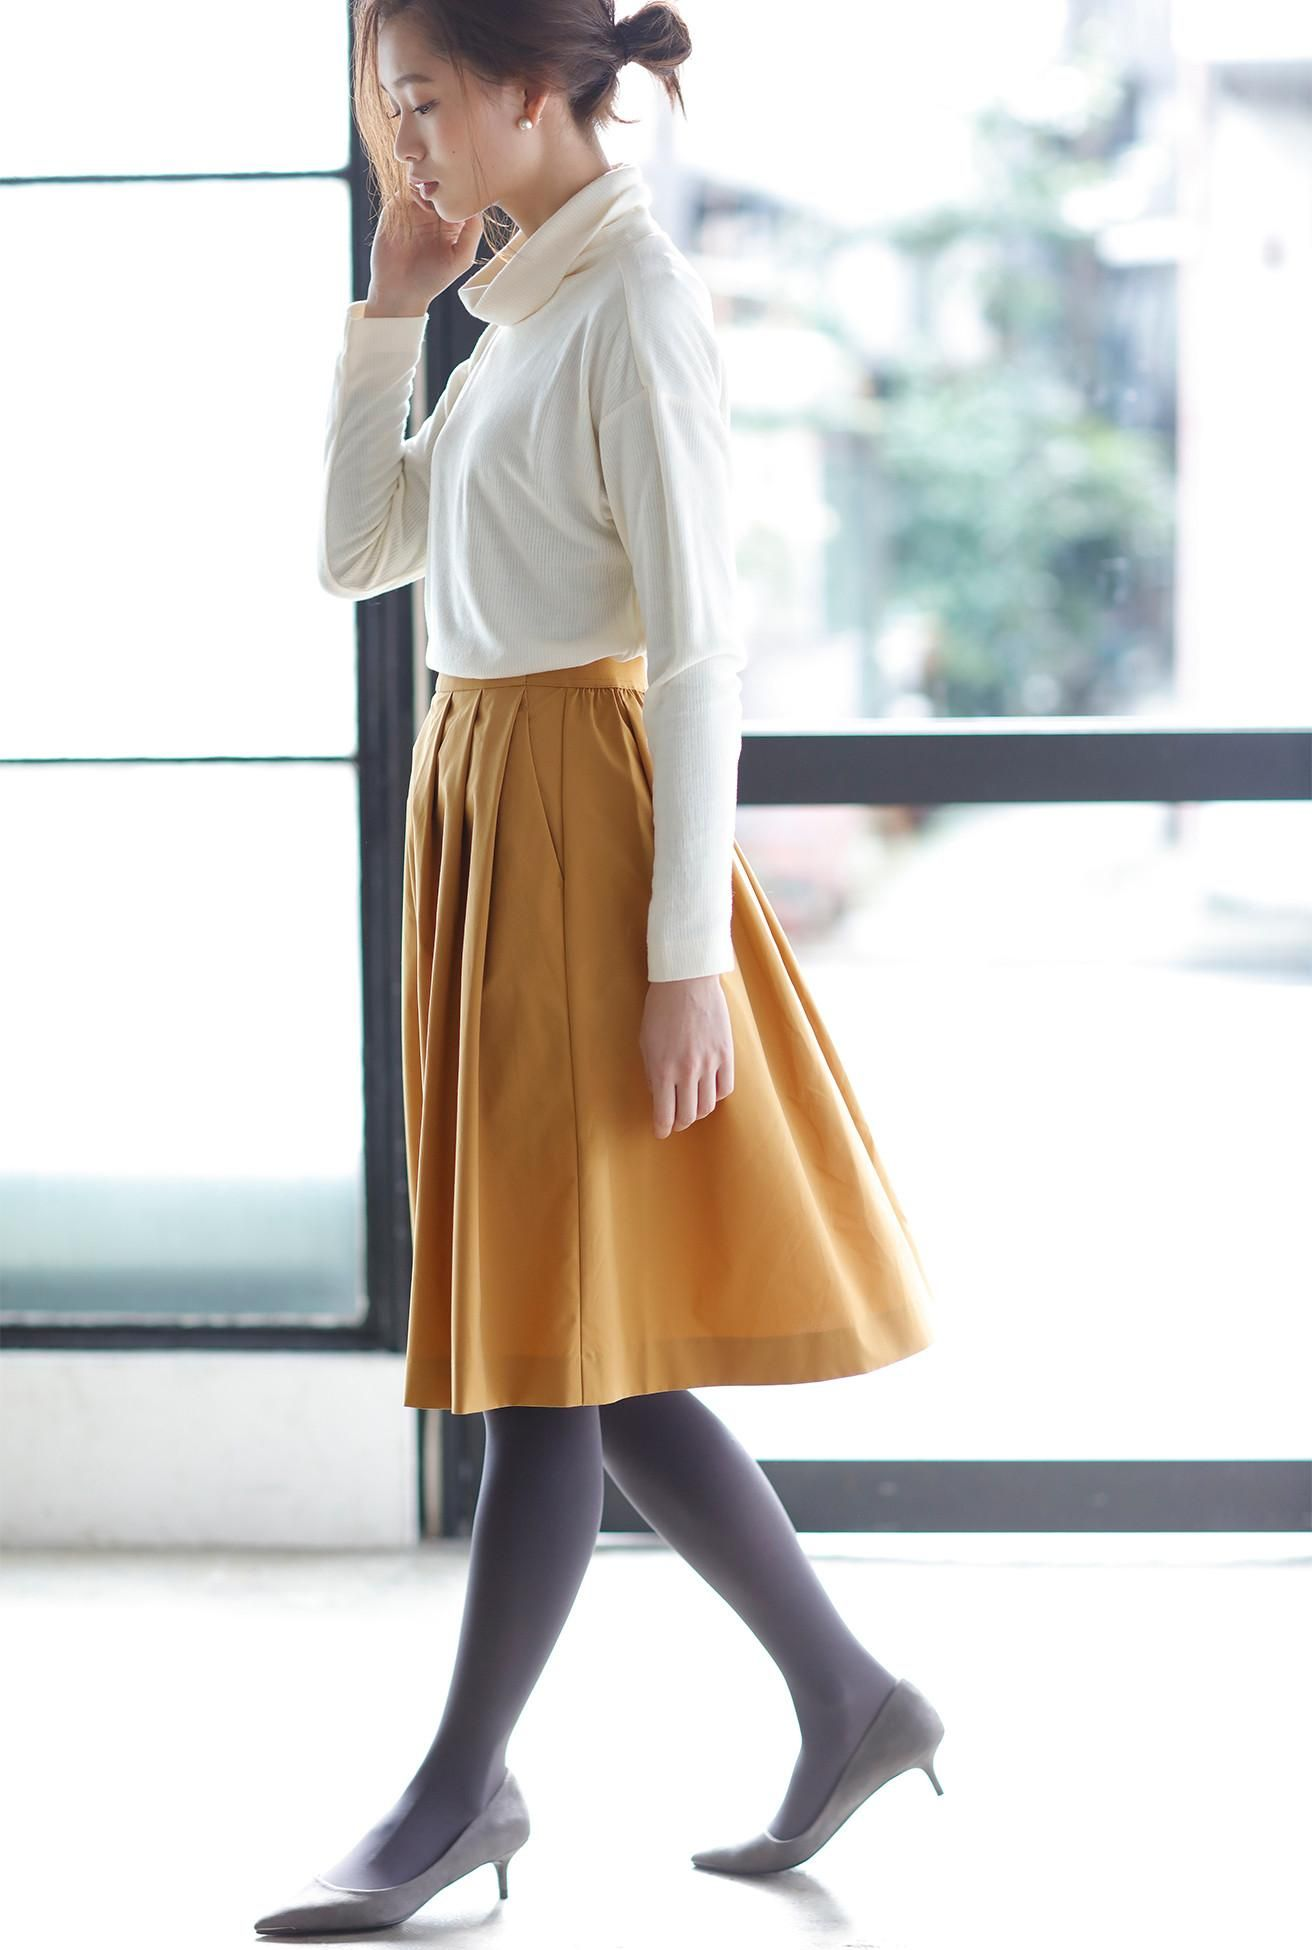 4861f4c4b0 Bring warmth to your stylish look by pairing our Dry Stretch Pleated Skirt  with HEATTECH Tights.